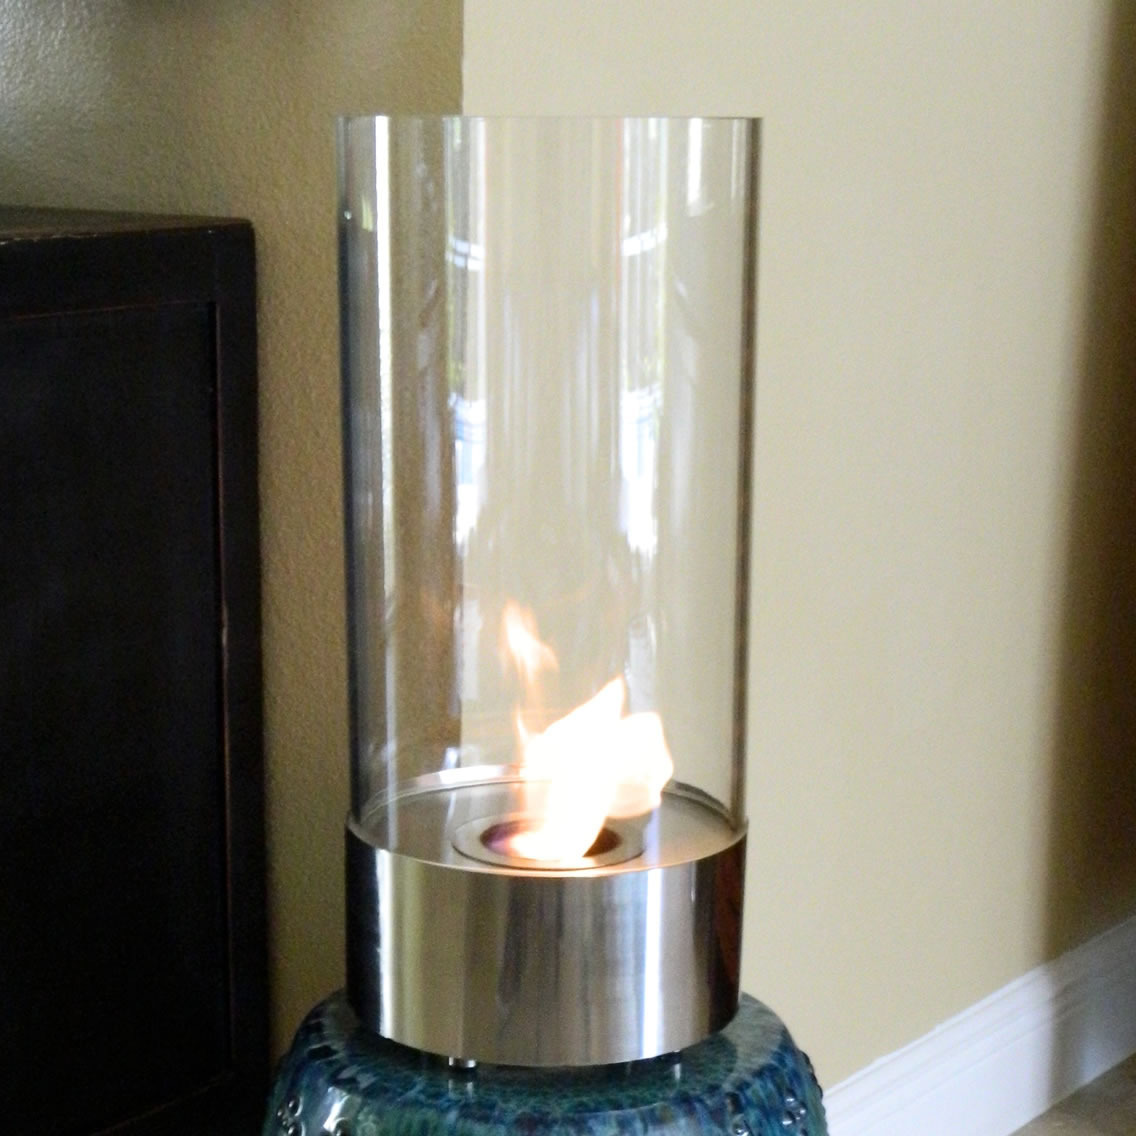 Flame Cristallo Stunning Tabletop Fire Cylinder Photo